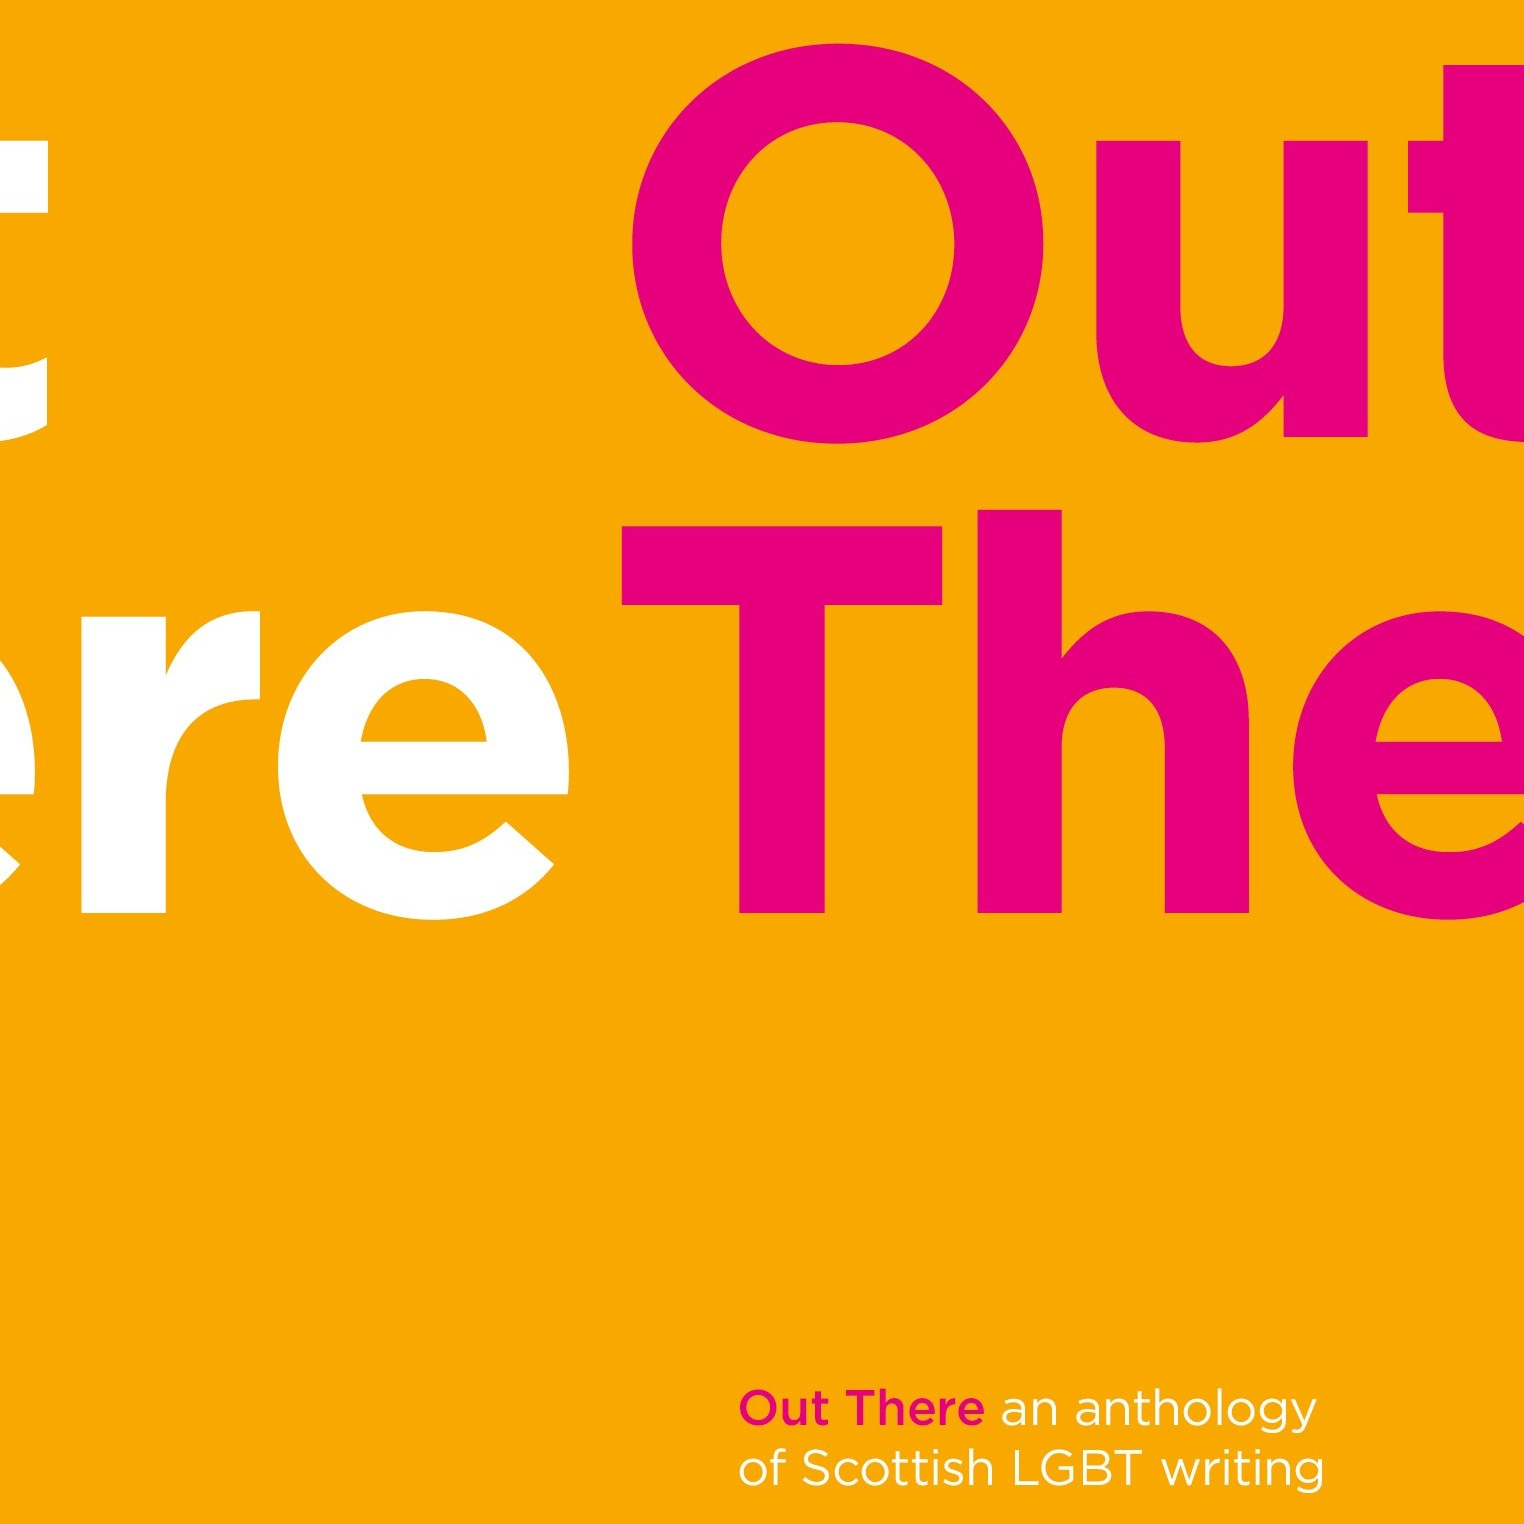 Out There: An Anthology of Scottish LGBT Writing - In the year that Scotland voted on independence from the rest of the UK, Zoe Strachan edited a definitive anthology of prose writing from Scotland's leading and emerging gay writers, including the likes of Ali Smith, Louise Welsh, Jackie Kay, Ronald Frame, Toni Davidson and many others. Paul McQuade contributes 'Per Aspera ad Astra'.